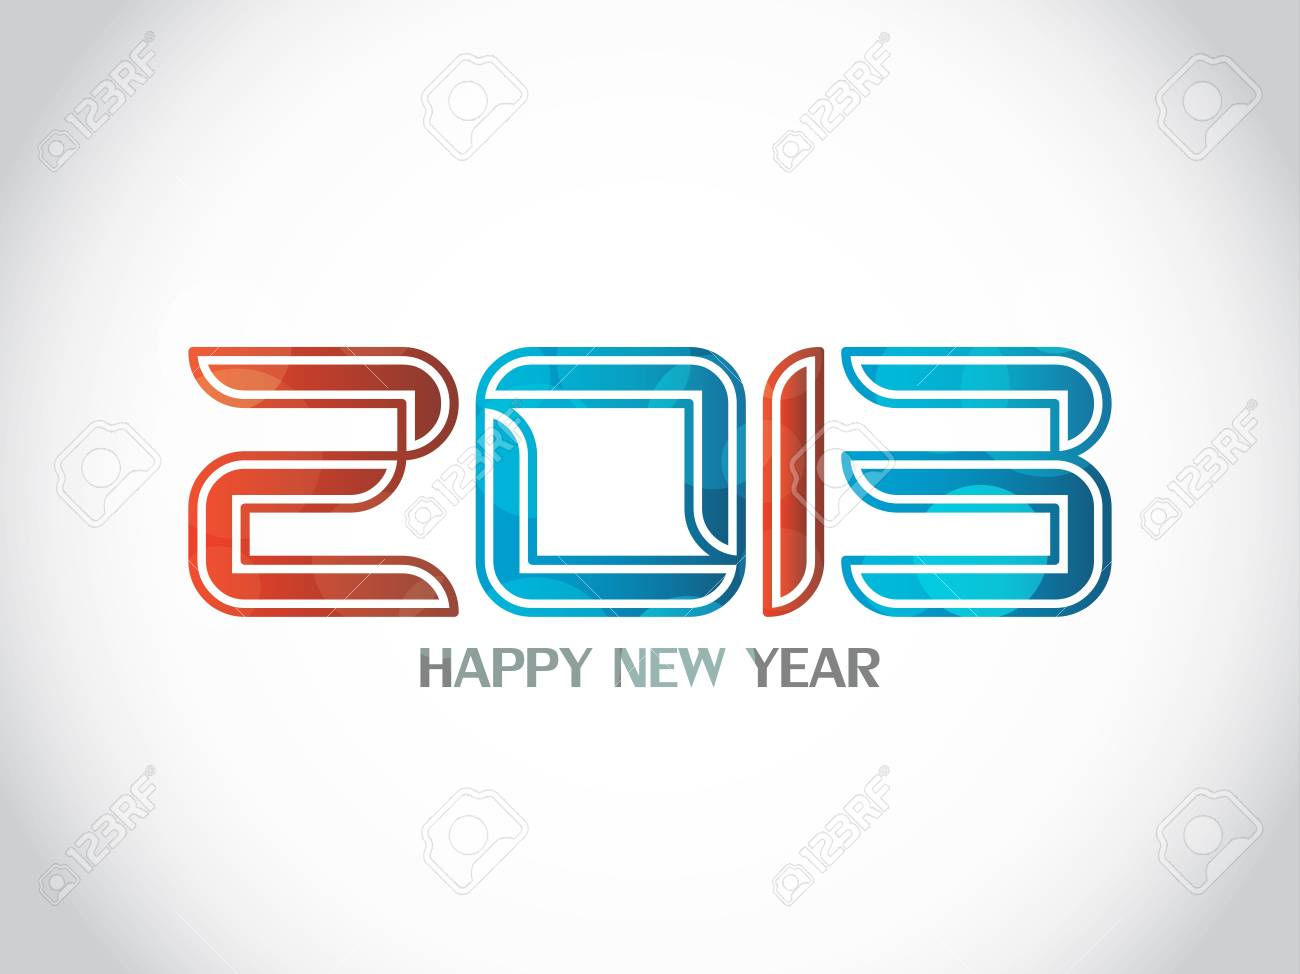 Beautiful happy new year 2013 background design Stock Vector - 17070869